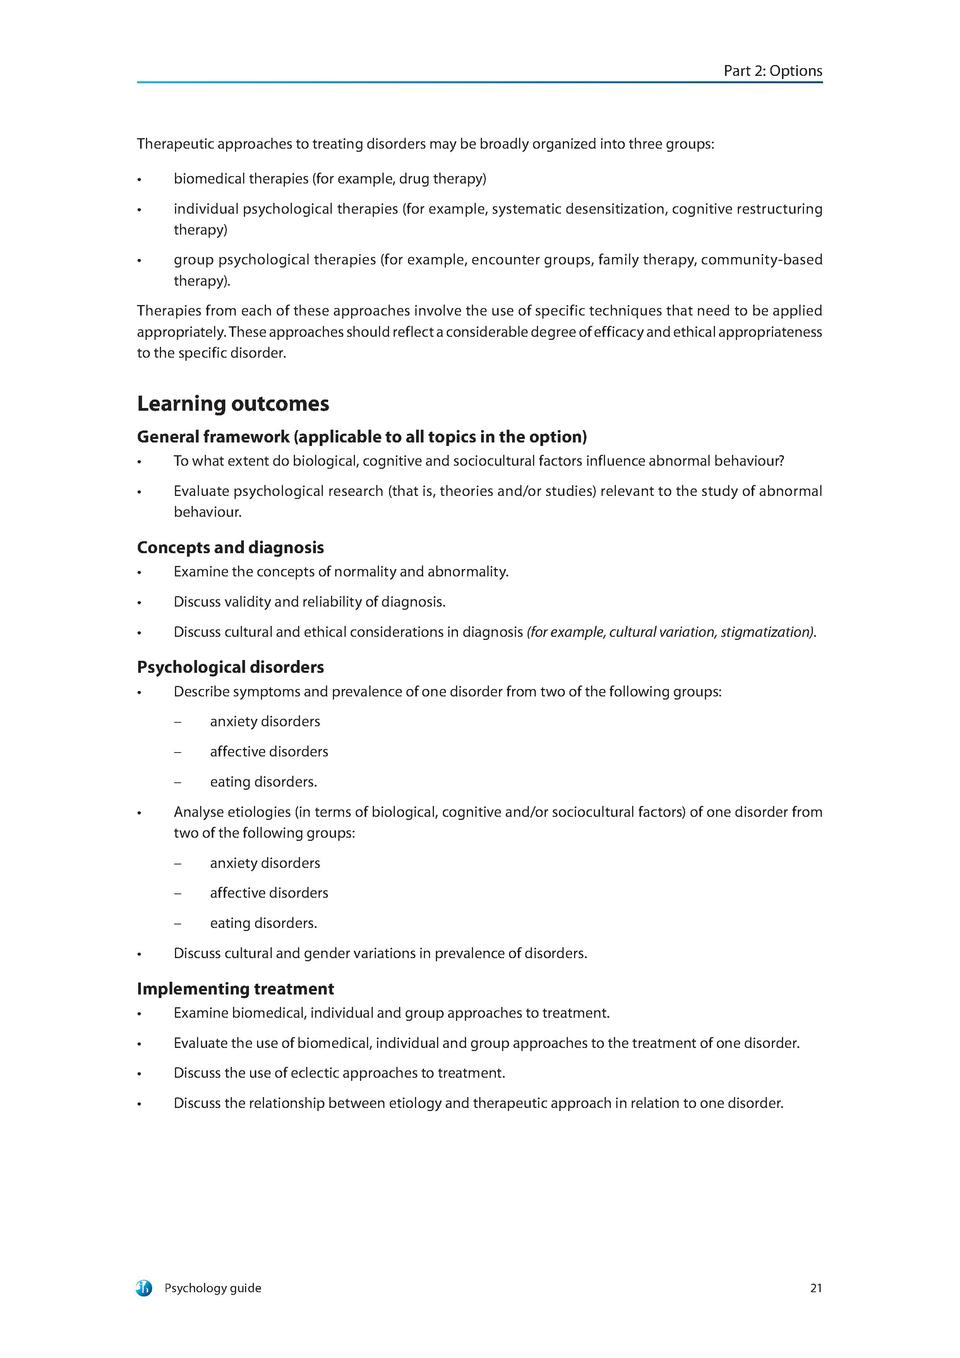 psychological disorders and treatment essay 100% free ap test prep website that offers study material to high school students seeking to prepare for ap exams enterprising students use this website to learn ap class material, study for class quizzes and tests, and to brush up on course material before the big exam day.